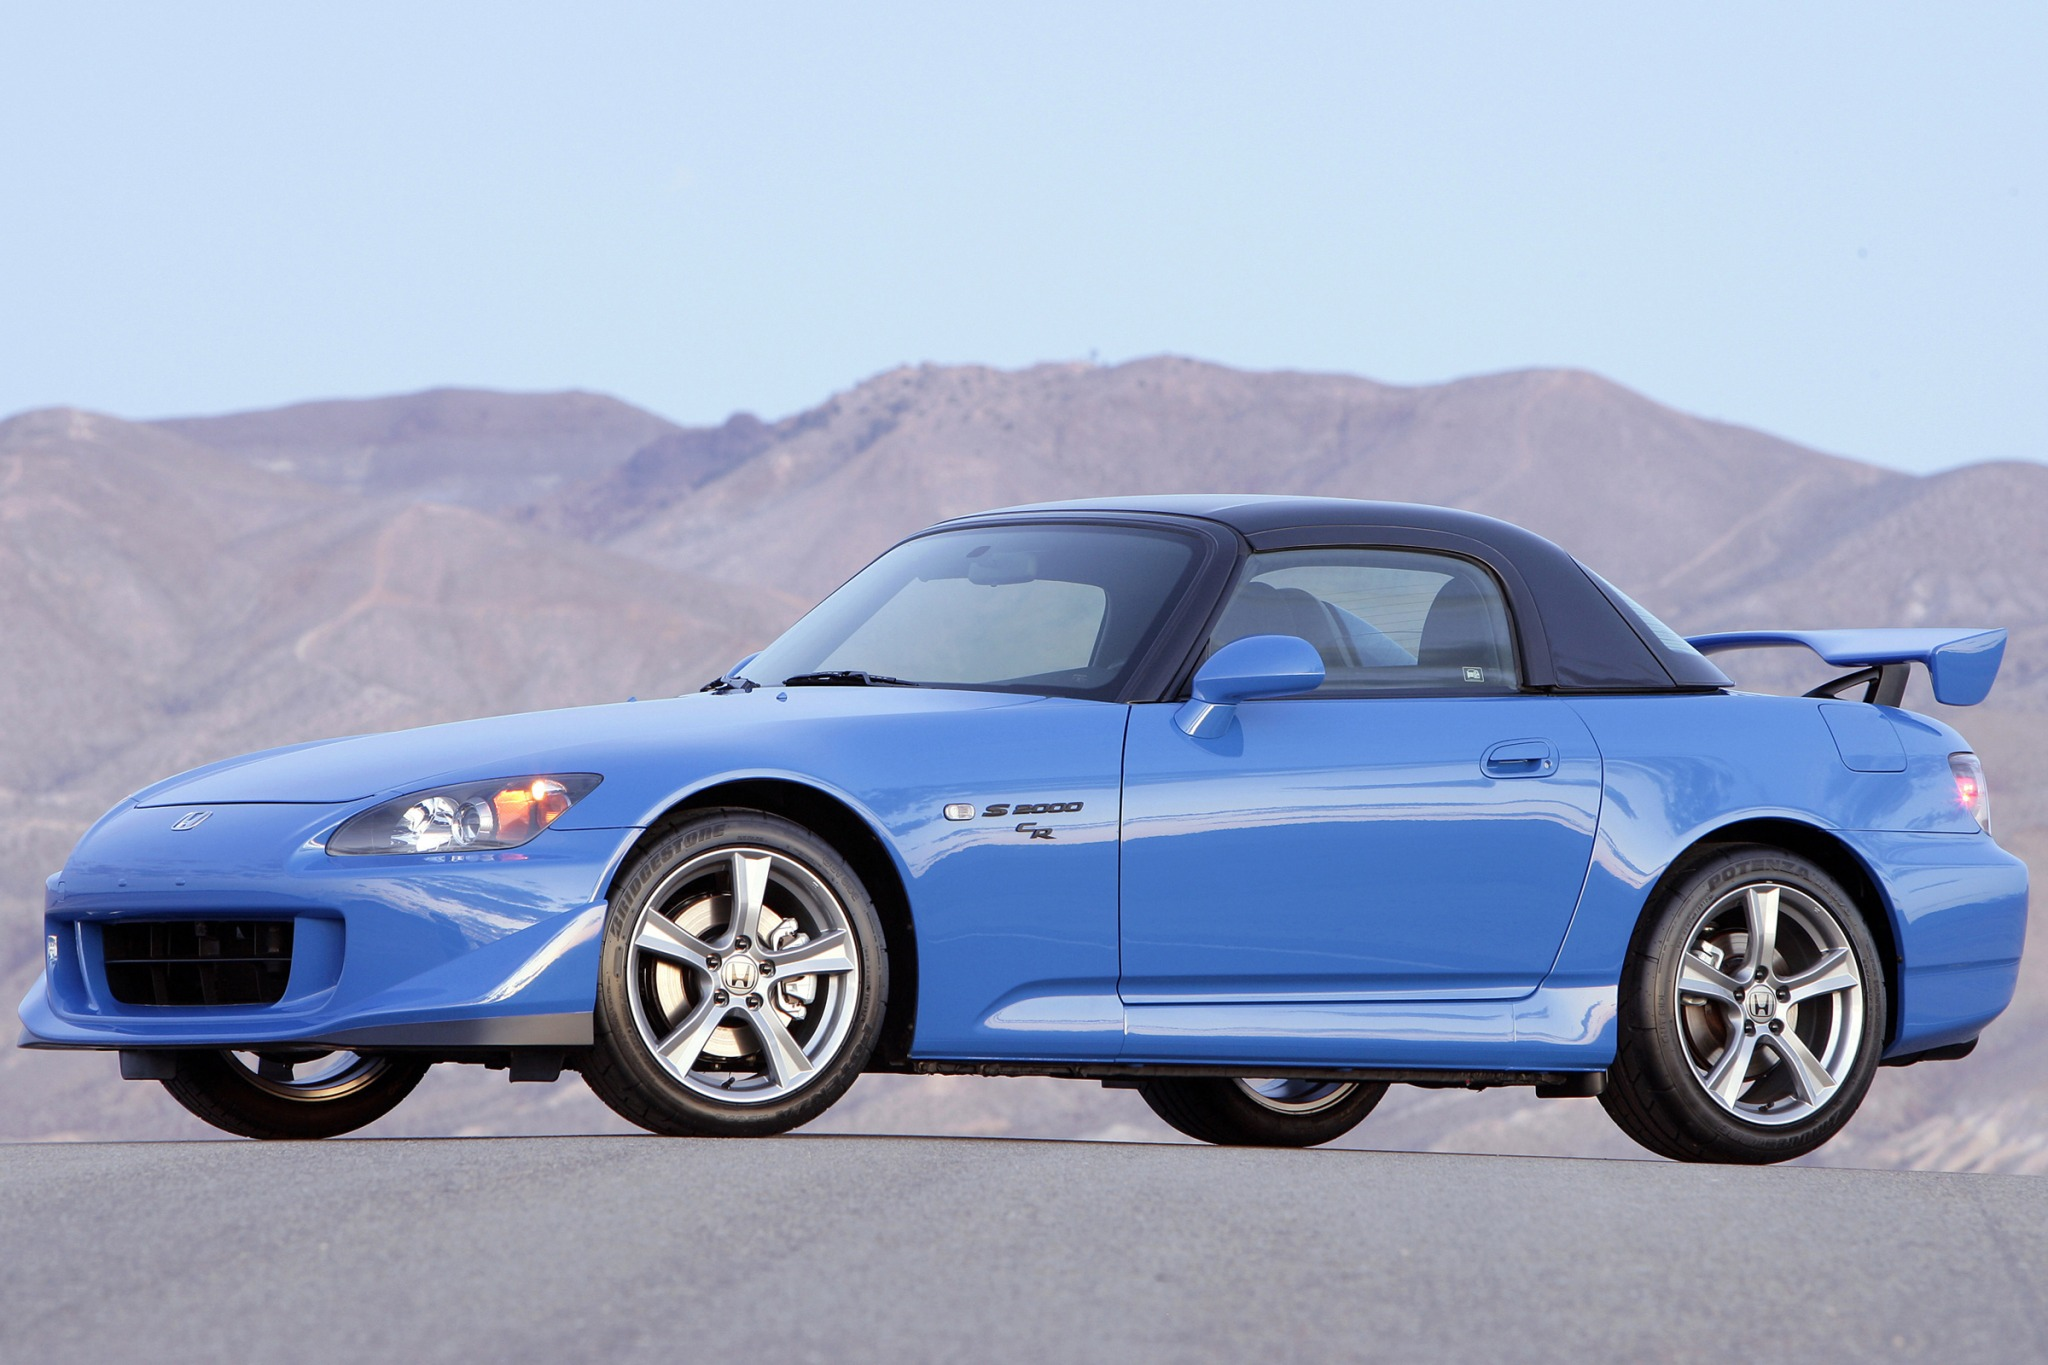 2008 Honda S2000 CR Cente interior #5